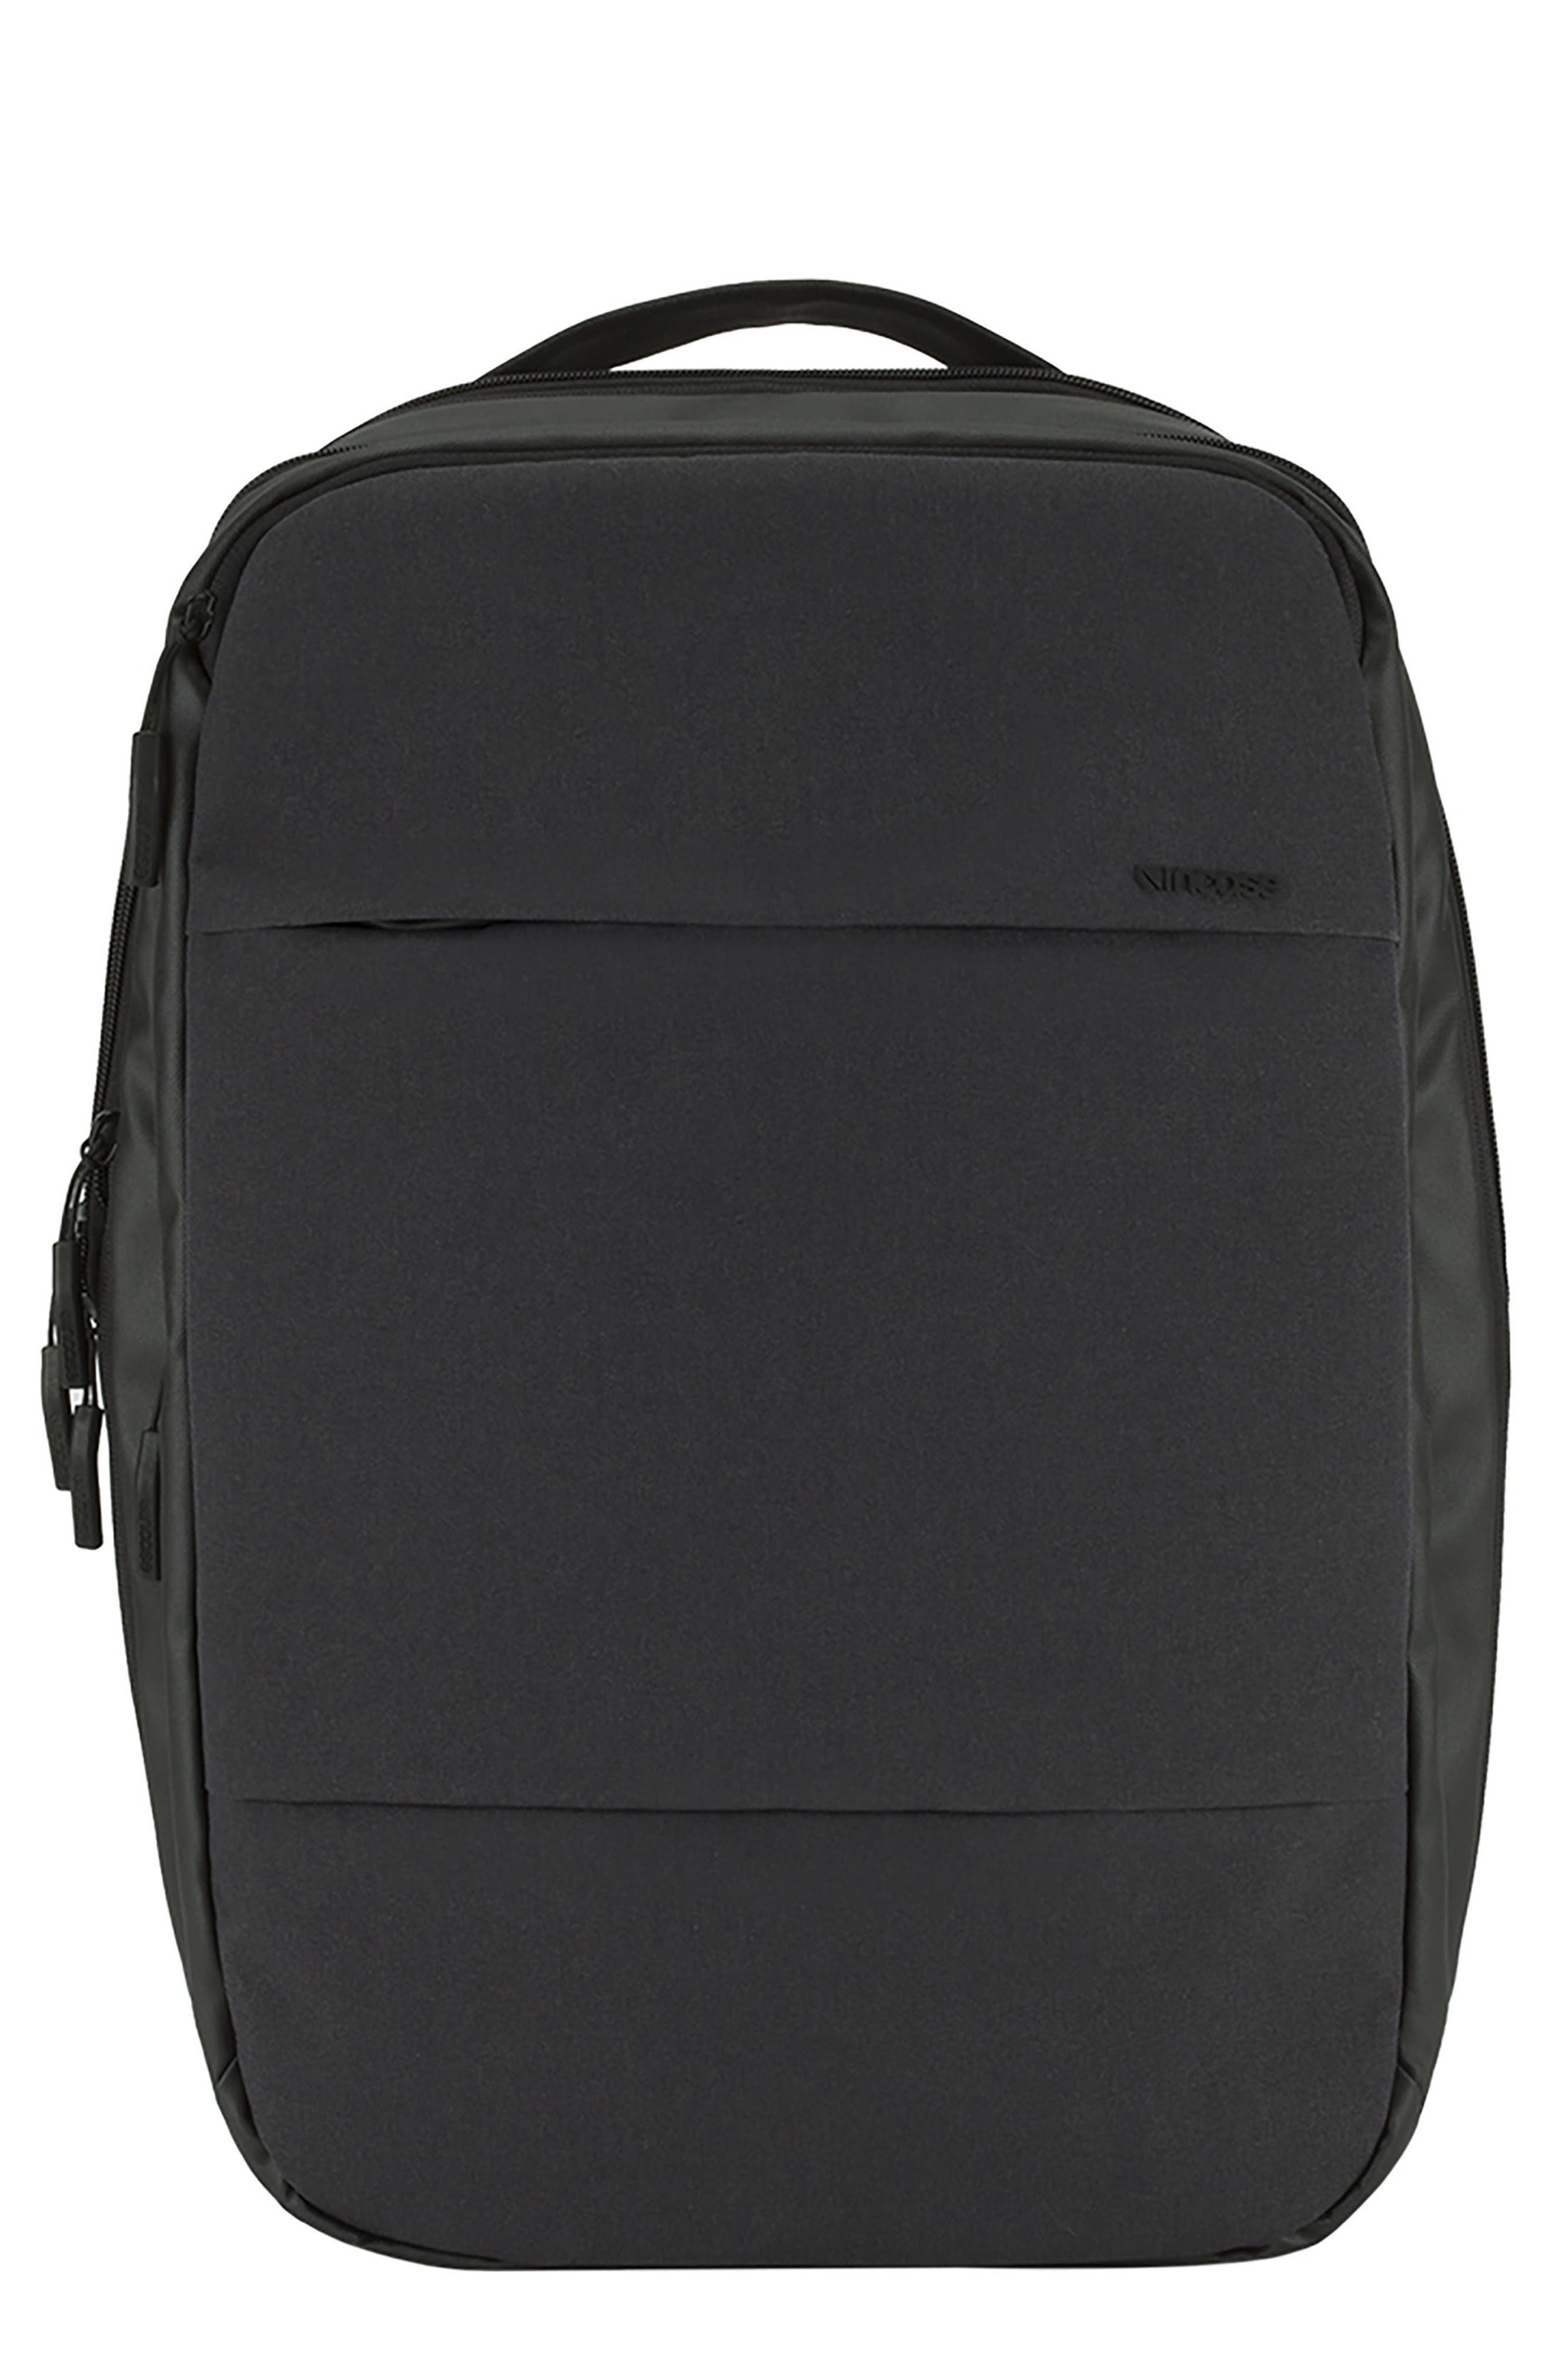 City Commuter Backpack,                         Main,                         color, Black